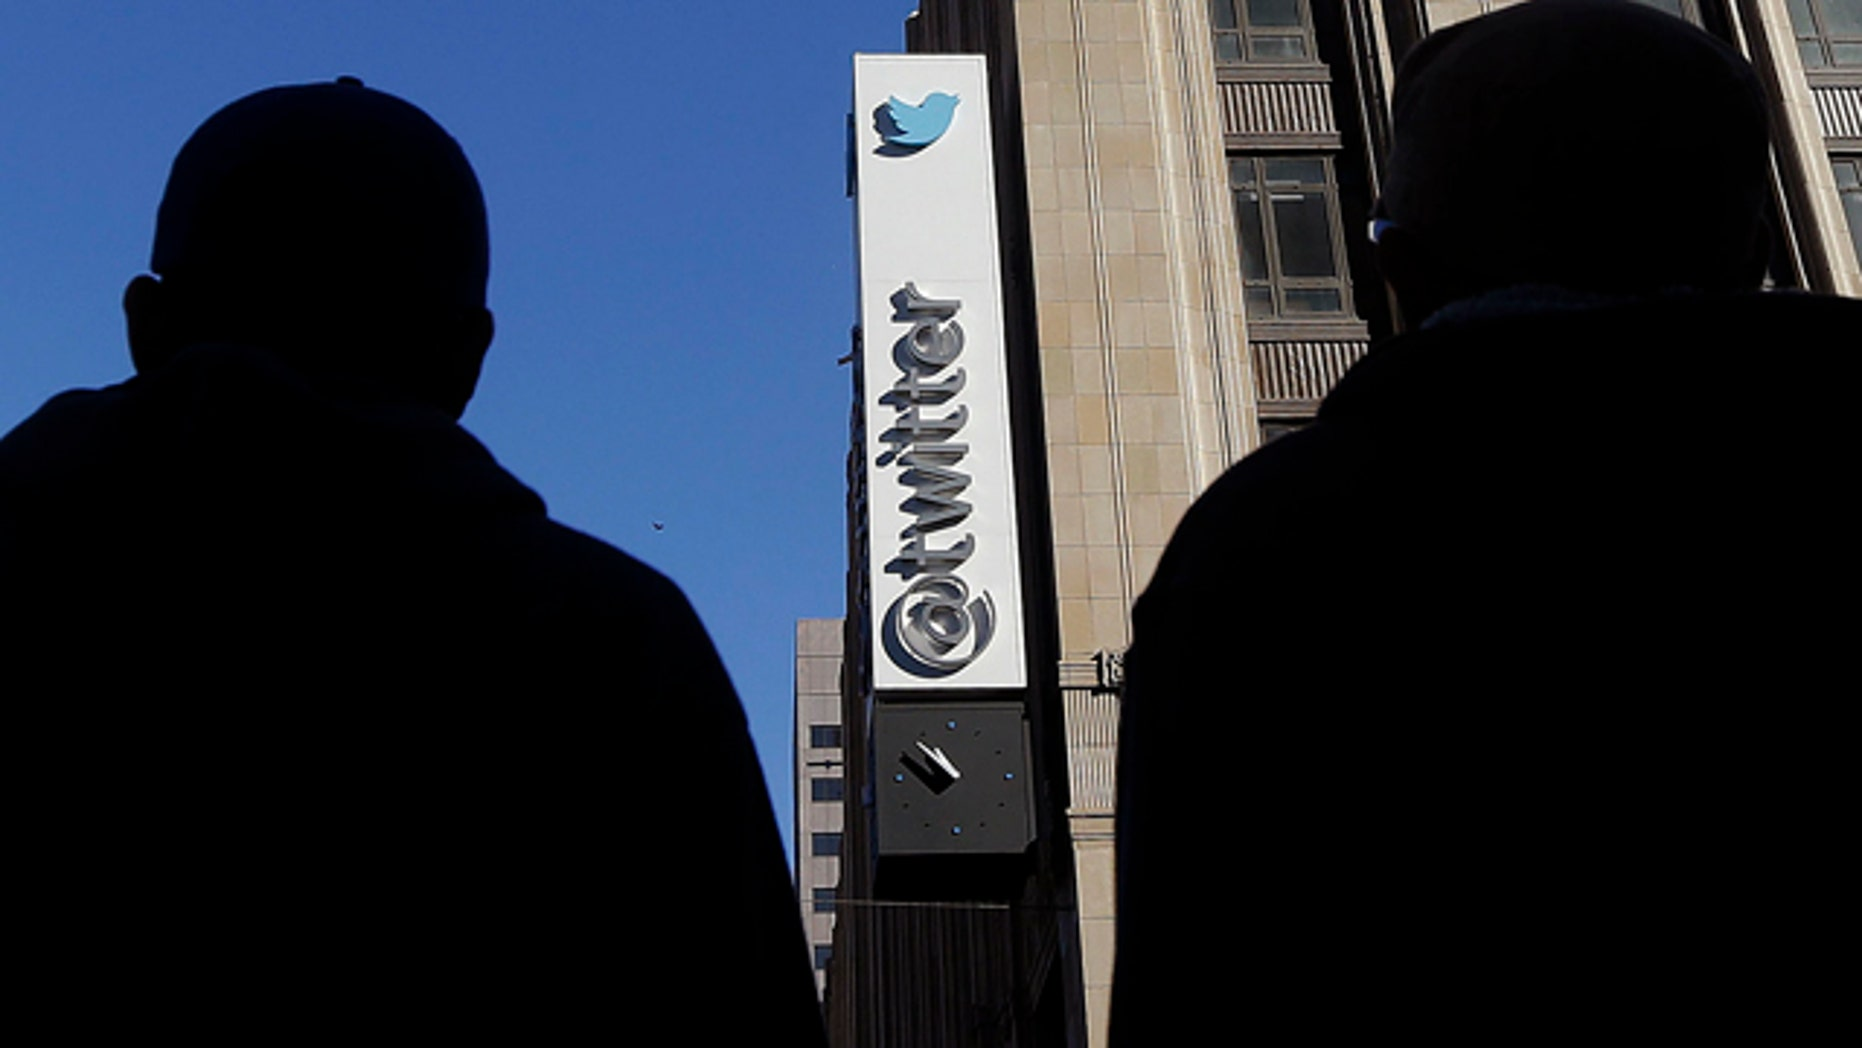 FILE - In this Monday, Nov. 4, 2013, file photo, pedestrians cross the street in front of Twitter headquarters in San Francisco. (AP Photo/Jeff Chiu, File)